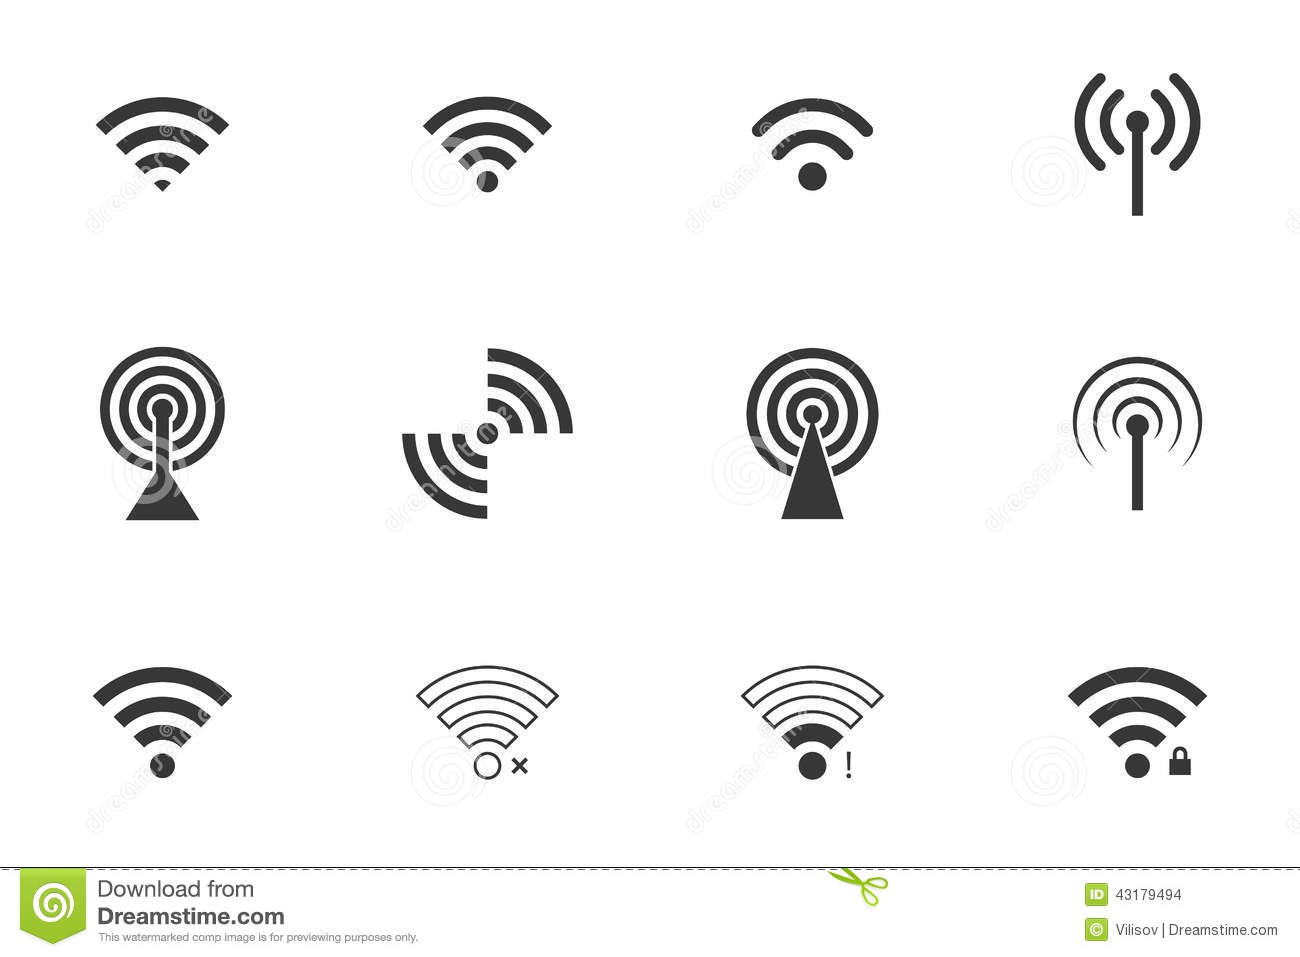 Wifi icons stock vector. Illustration of hotspot, mobility